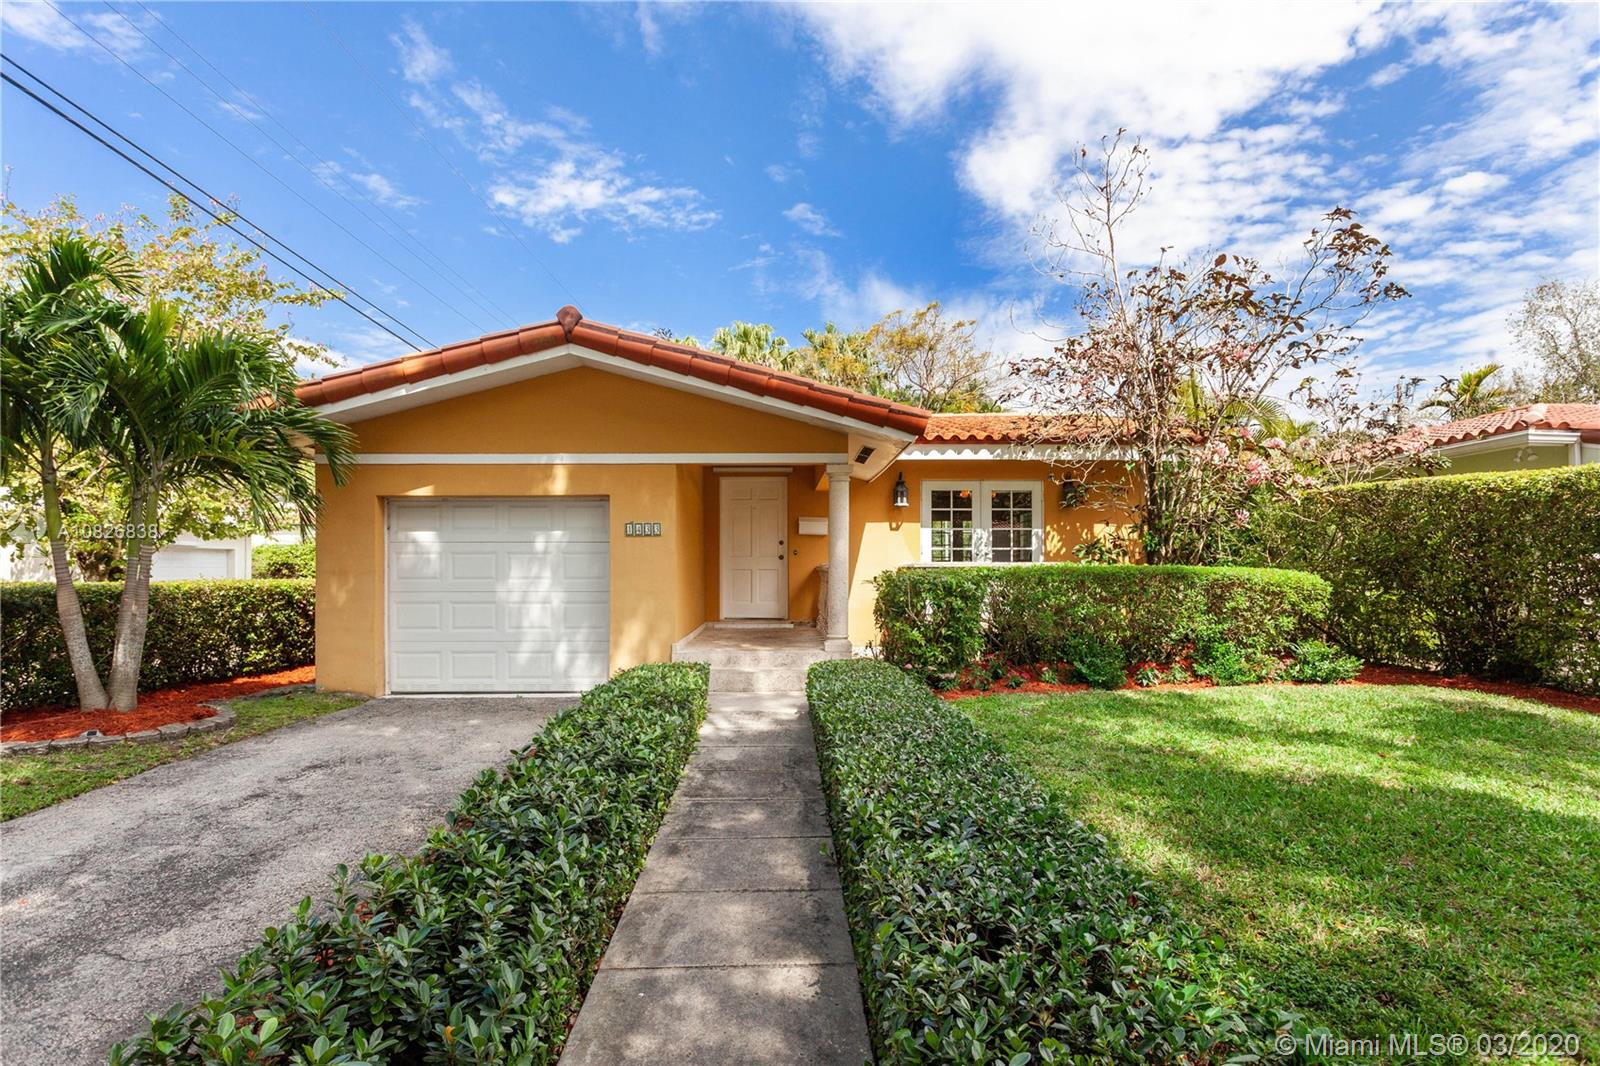 1433 Messina Ave, Coral Gables in Miami-dade County County, FL 33134 Home for Sale